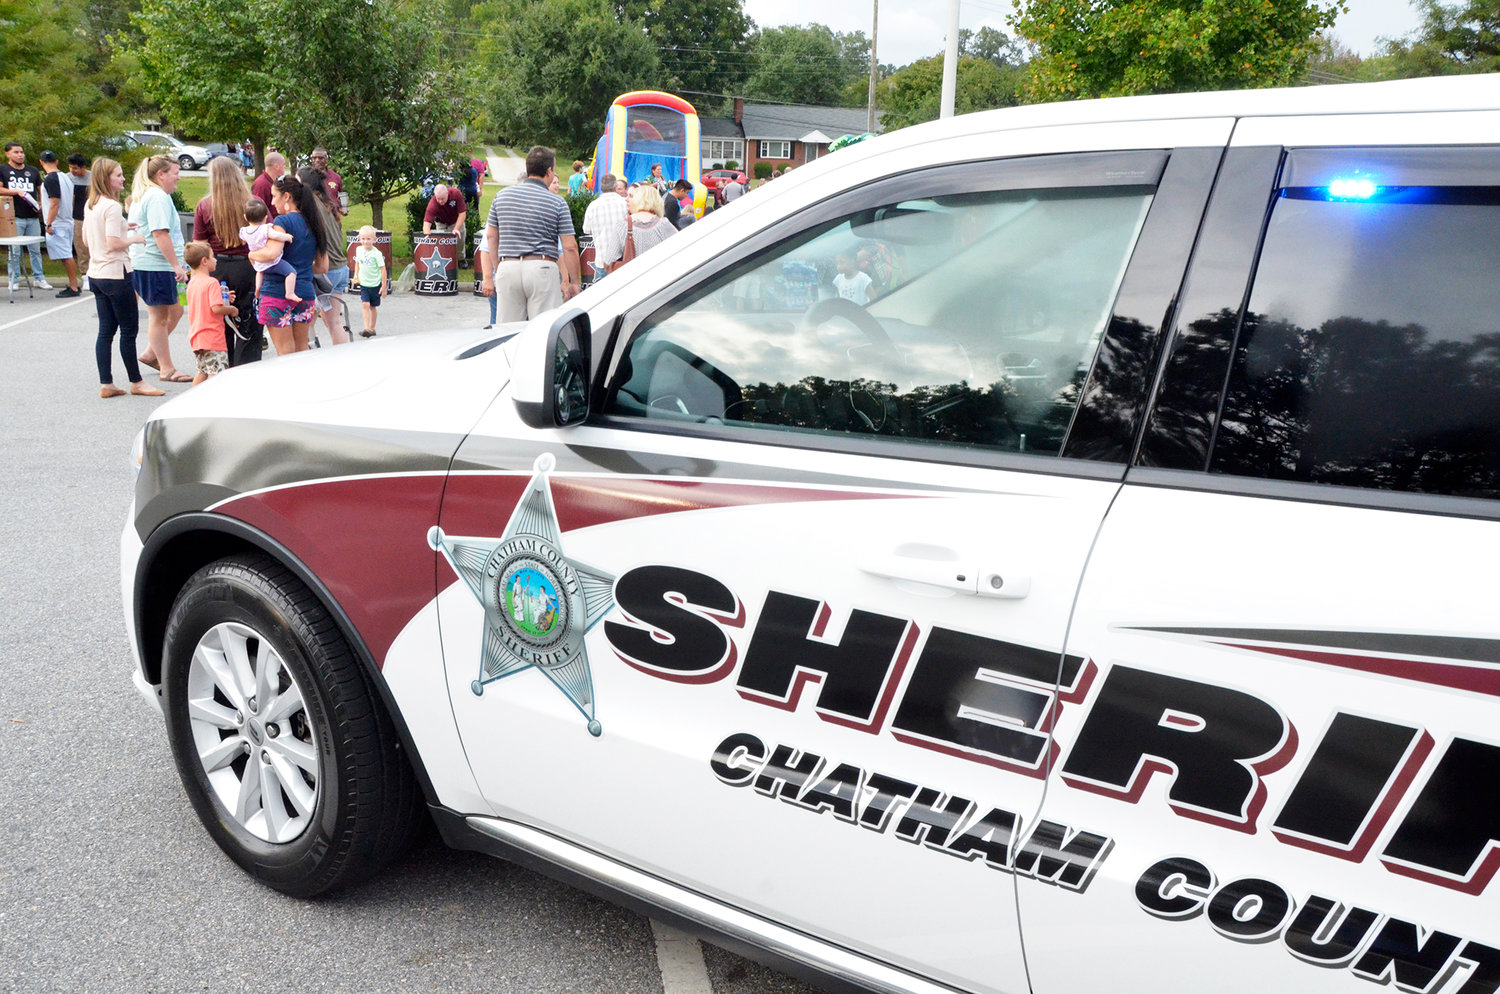 A Community Appreciation event was held last Friday at the Chatham County Sheriff's Office on West Street in Pittsboro. The event was held to introduce members of the community to the officers and deputies who watch over them. There was food and drink, a bouncy castle, and fun for the whole family.